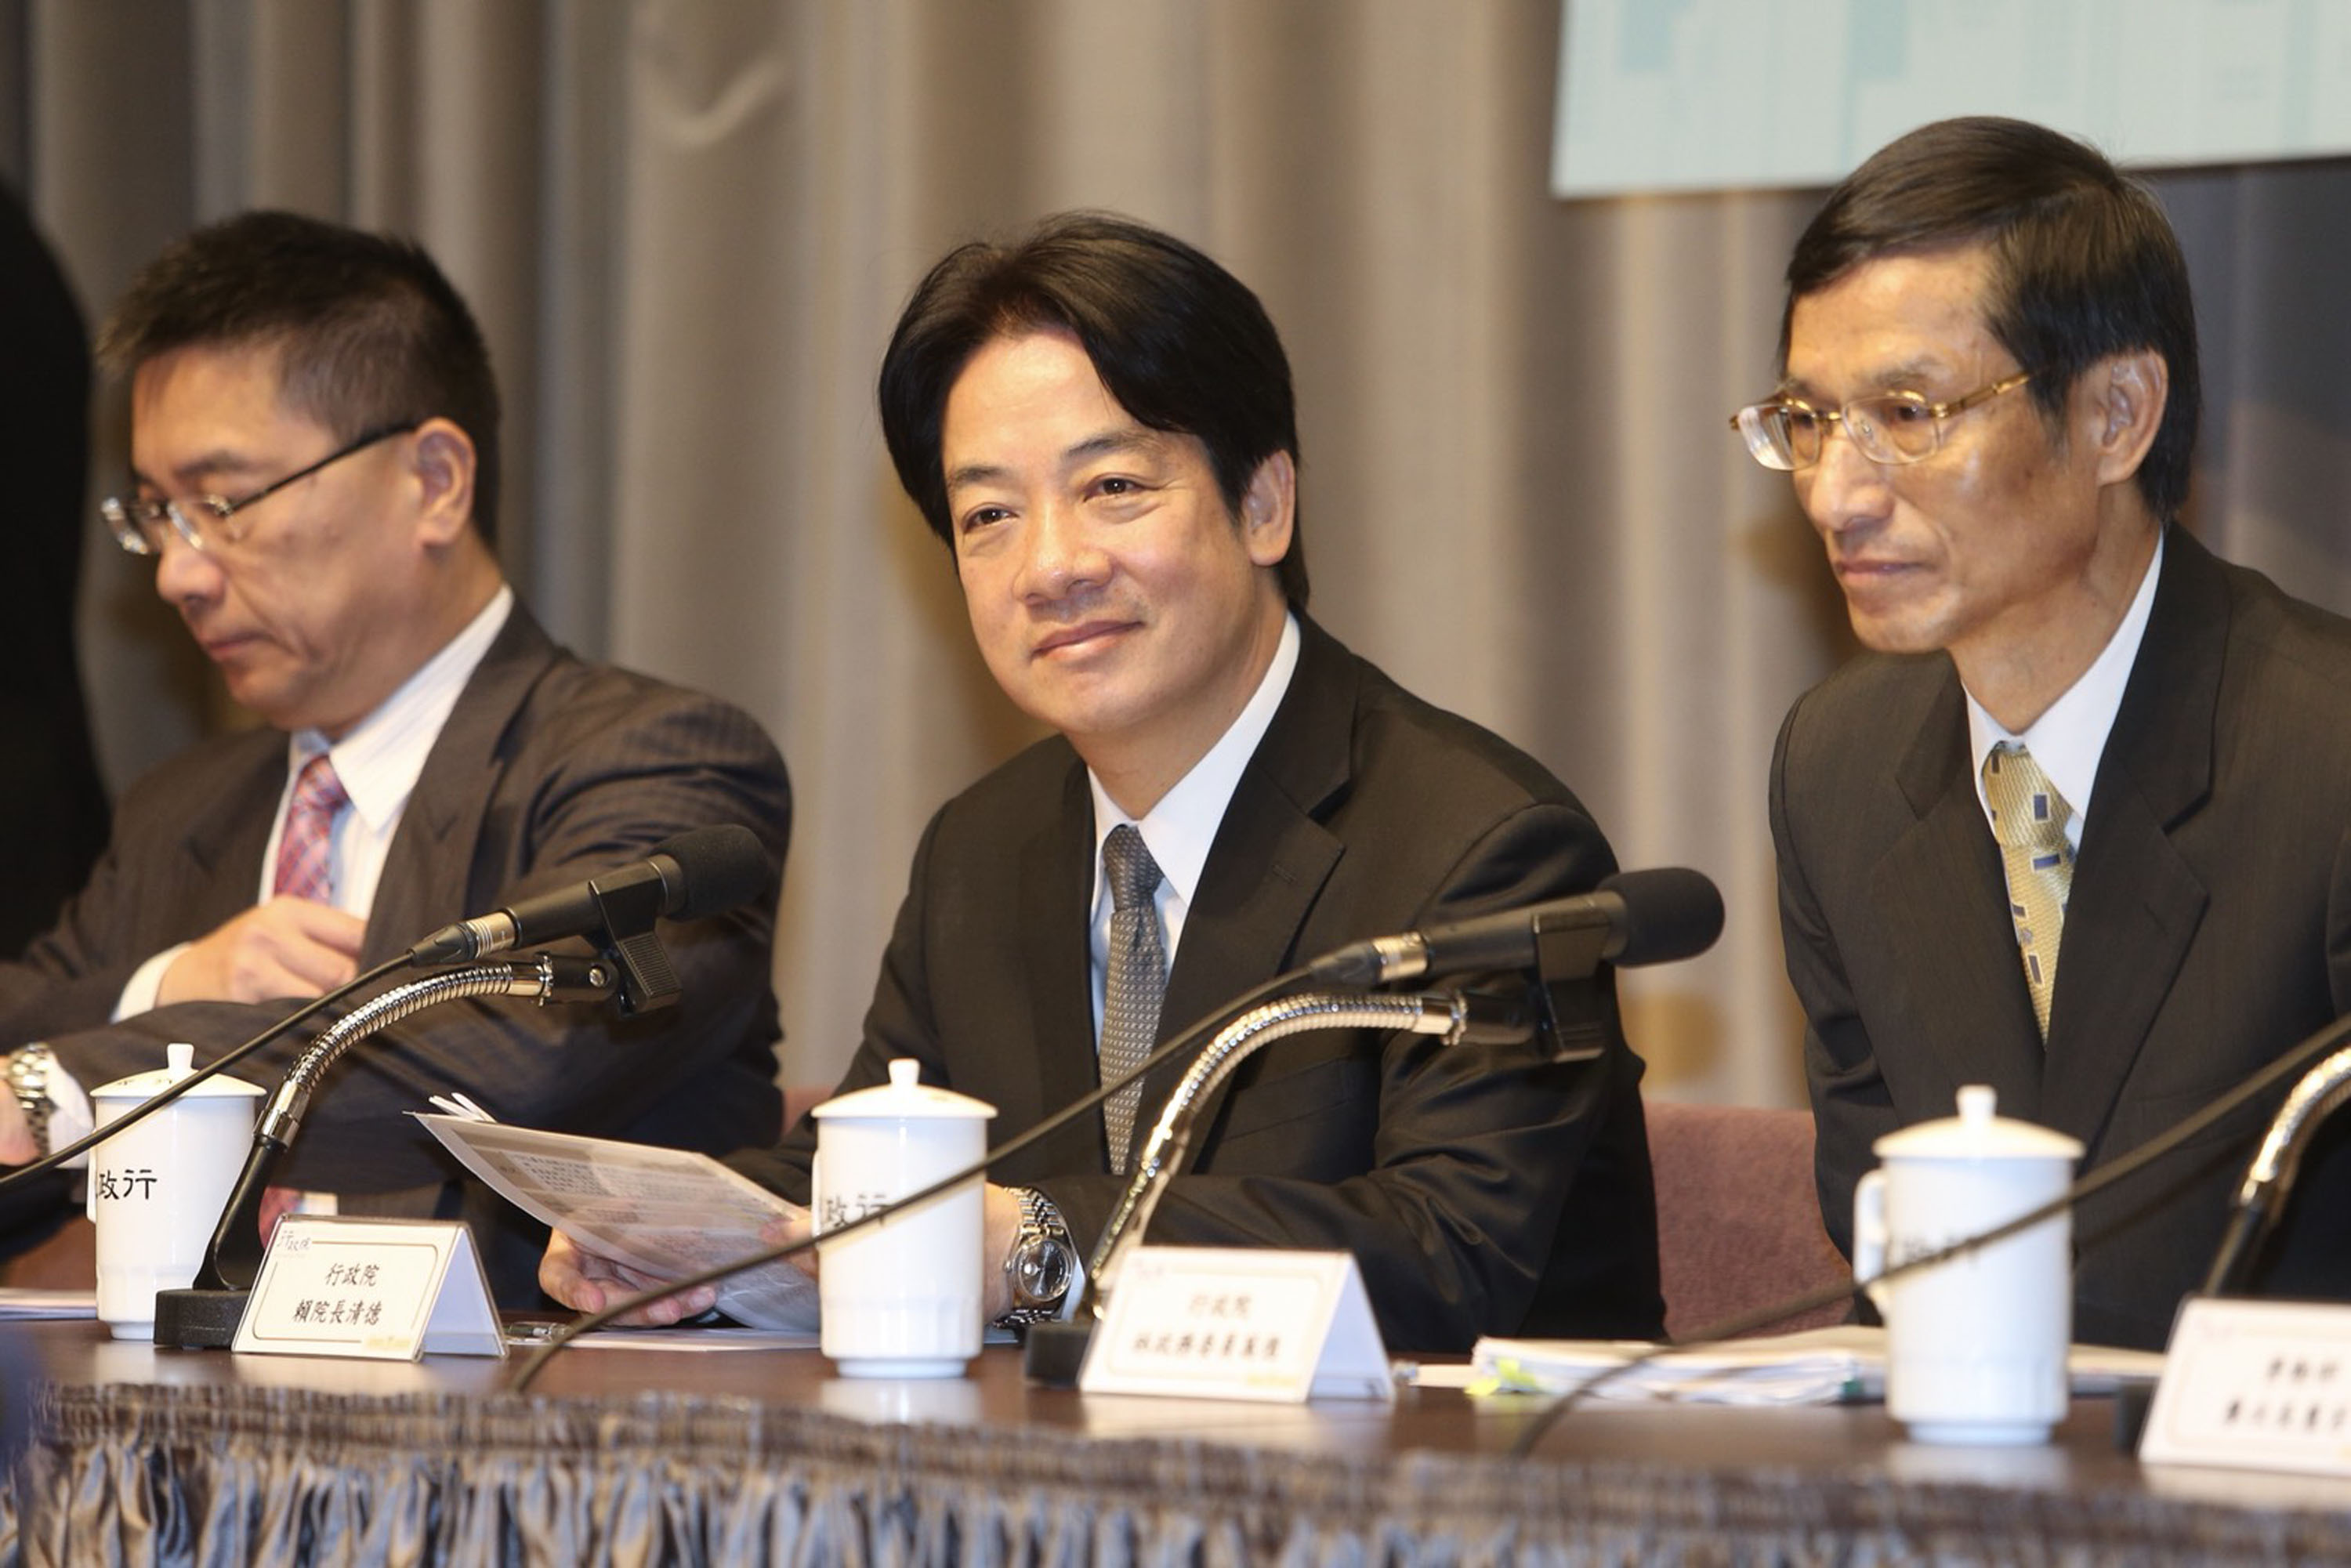 Premier Lai (center) with Minister without Portfolio Lin (right) and government spokesman Hsu Kuo-yung.